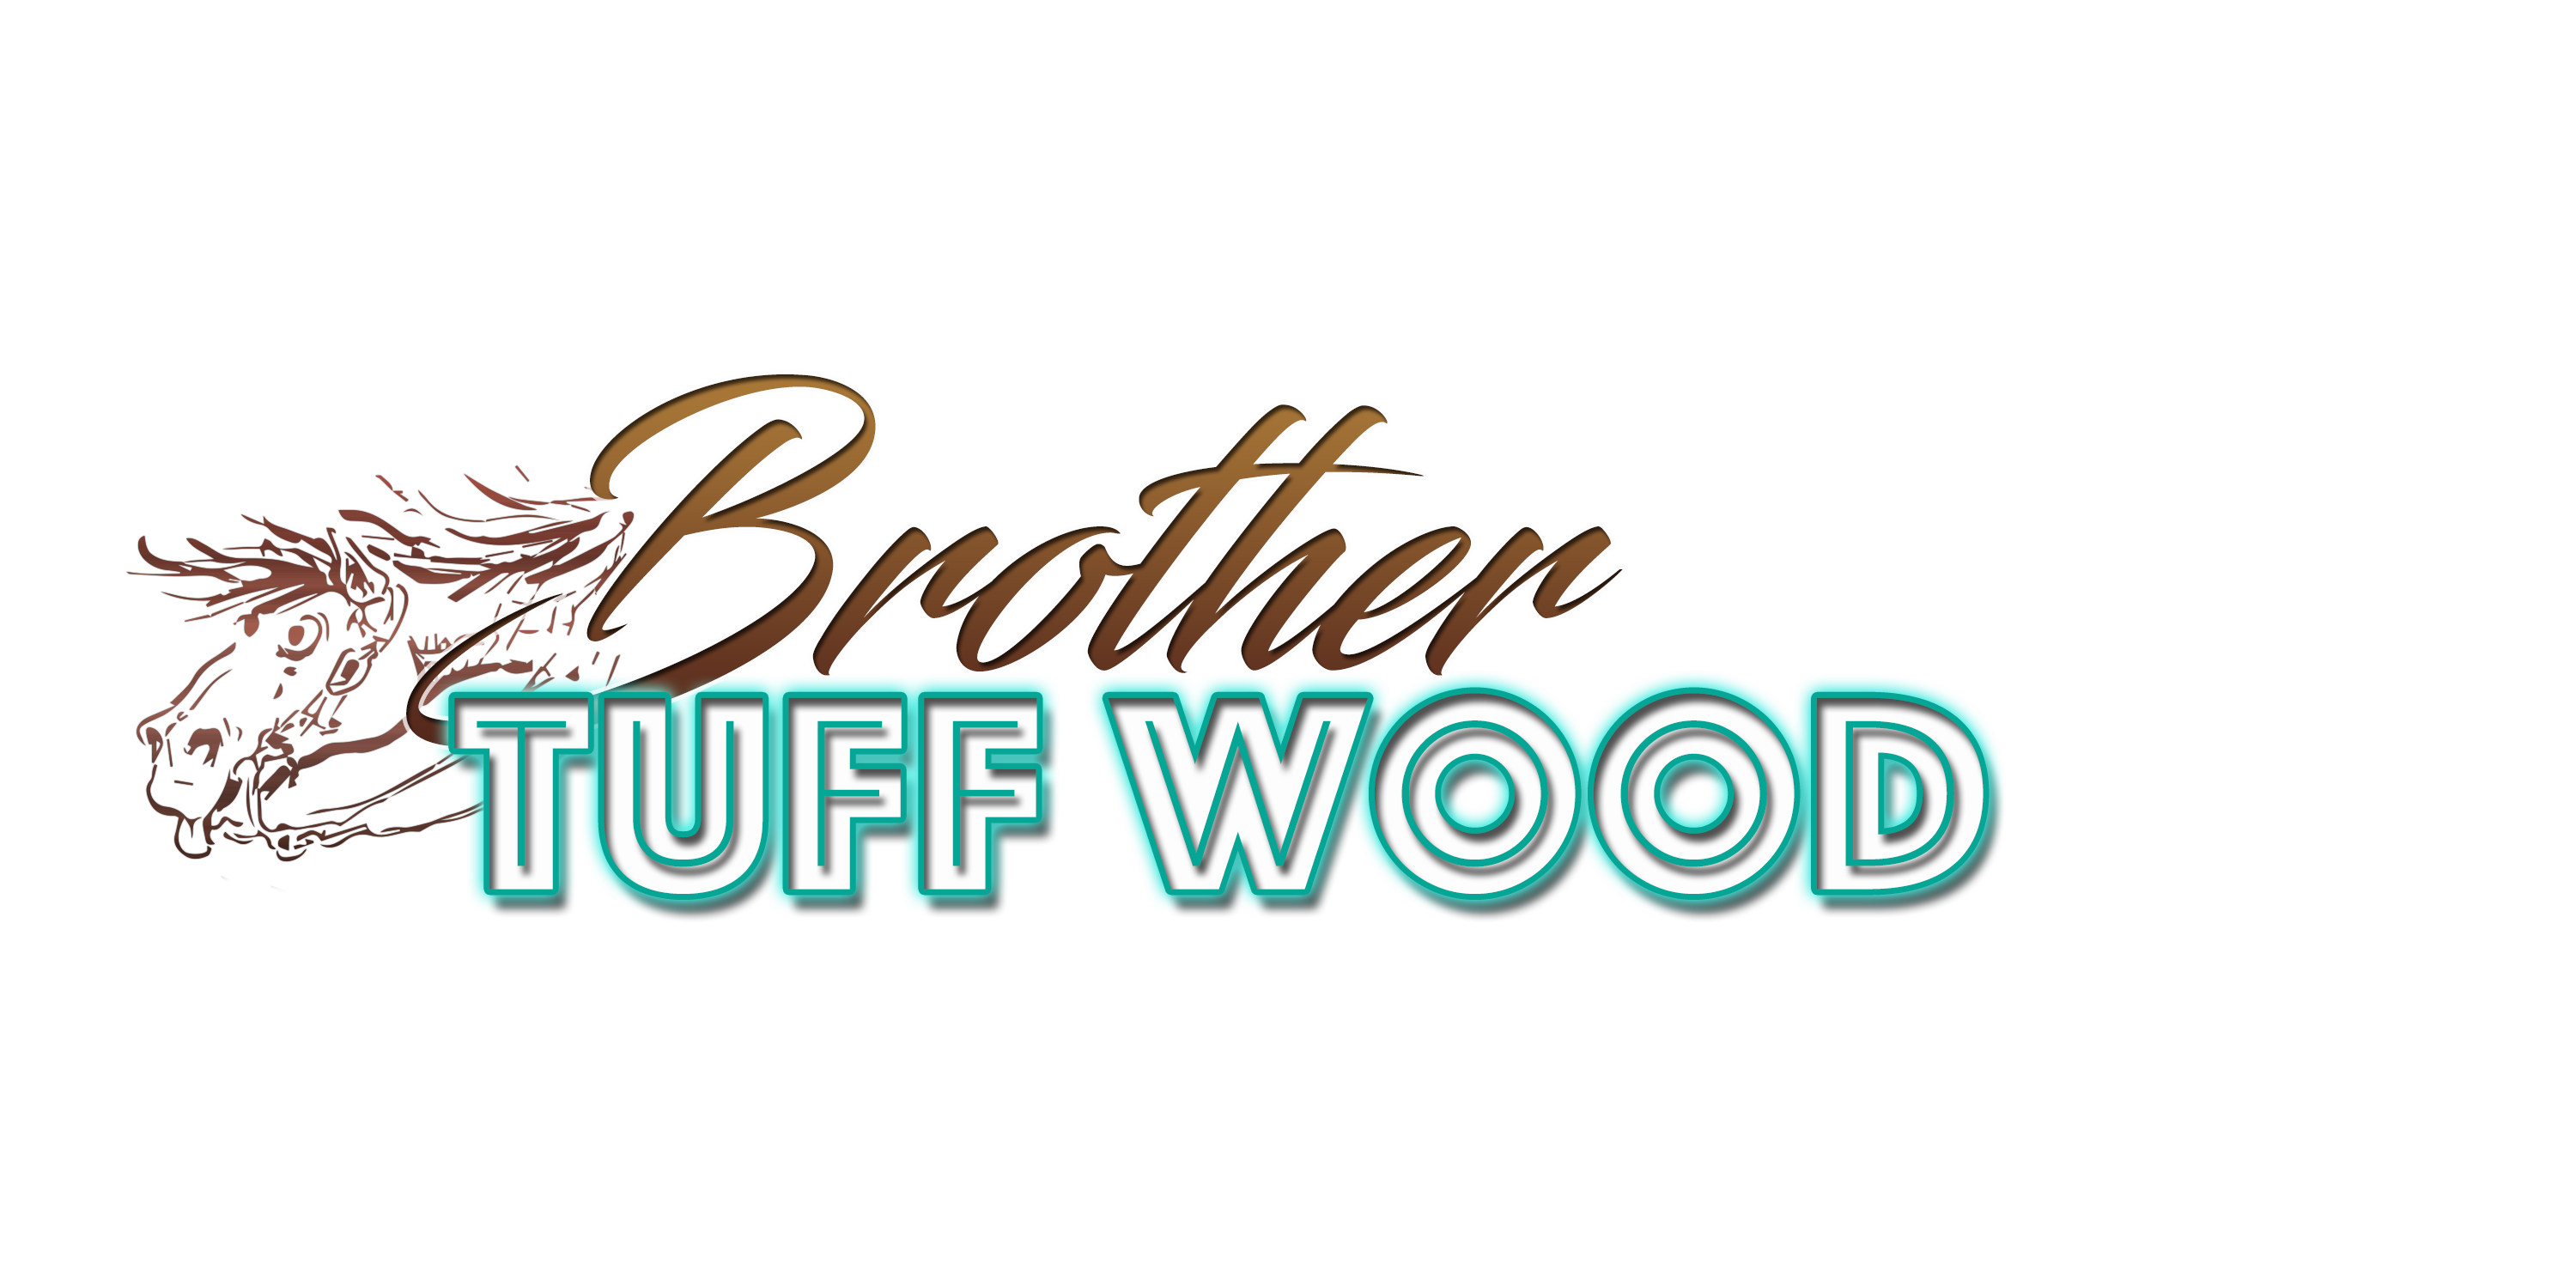 Brother Tuff Wood